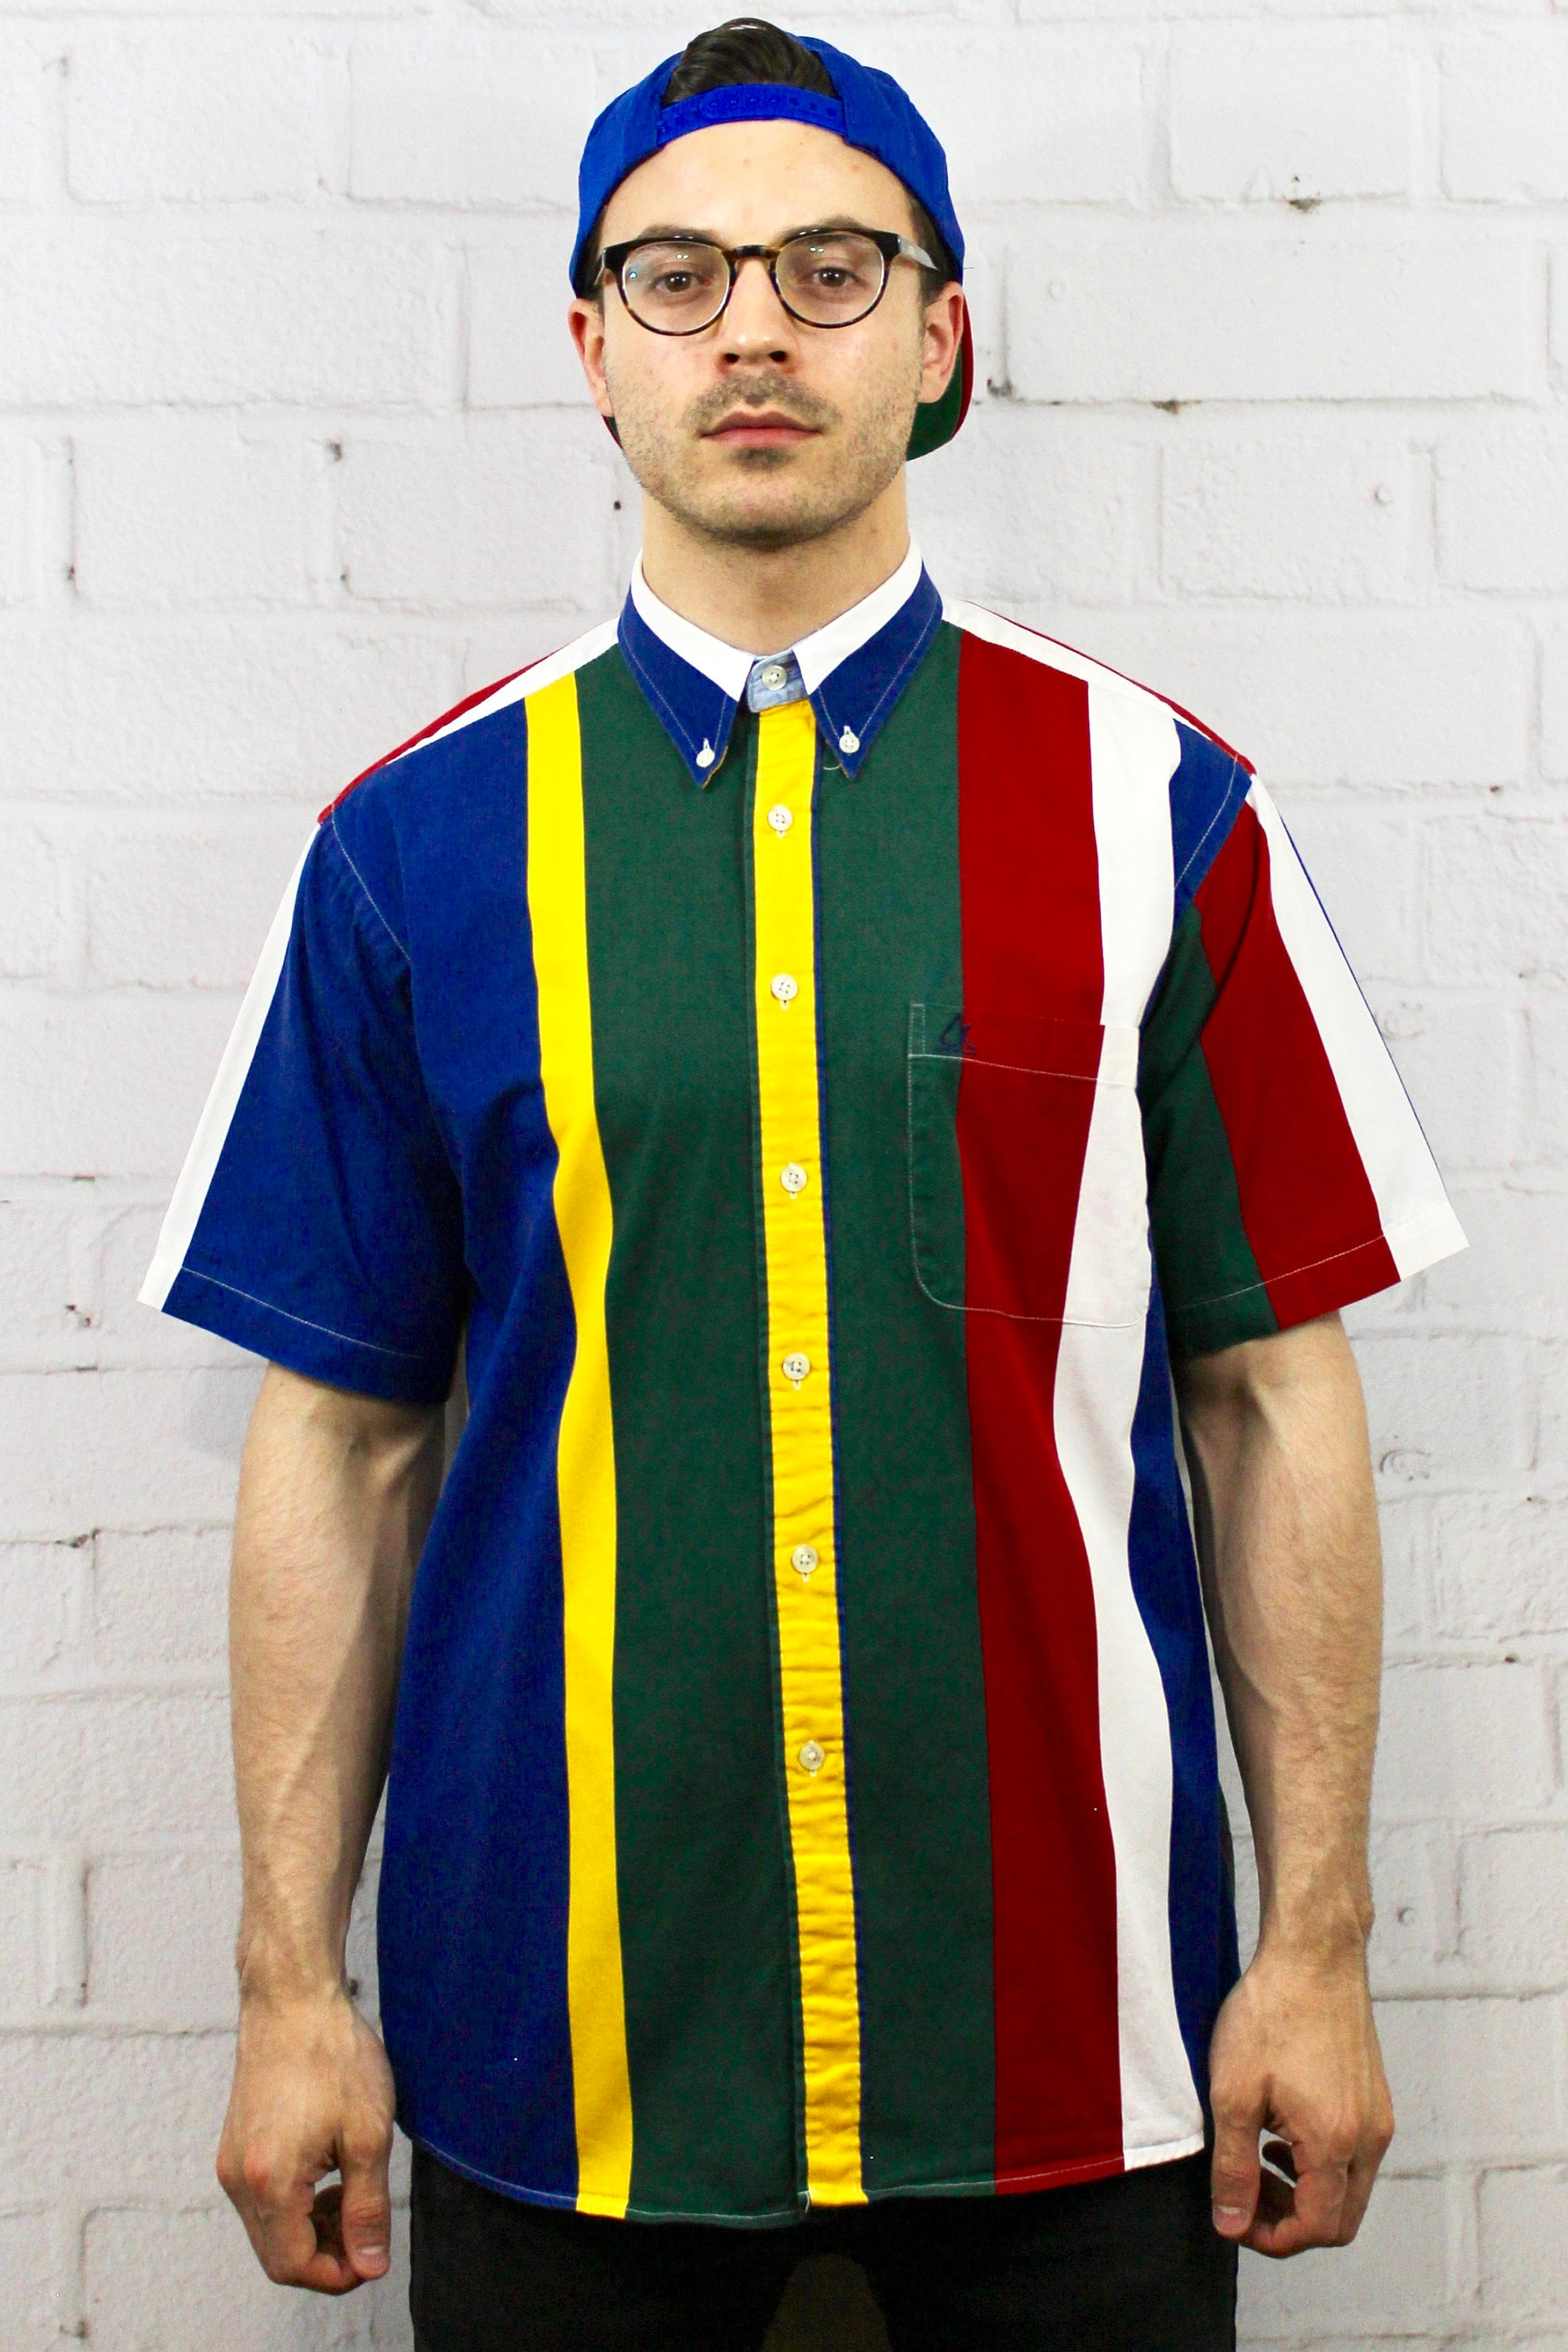 512f40950f 90s Color Block Primary Colors Shirt / Mens Vintage 80s Polo Ralph Lauren  Style Vertical Striped Short Sleeve Button Down / Fresh Prince